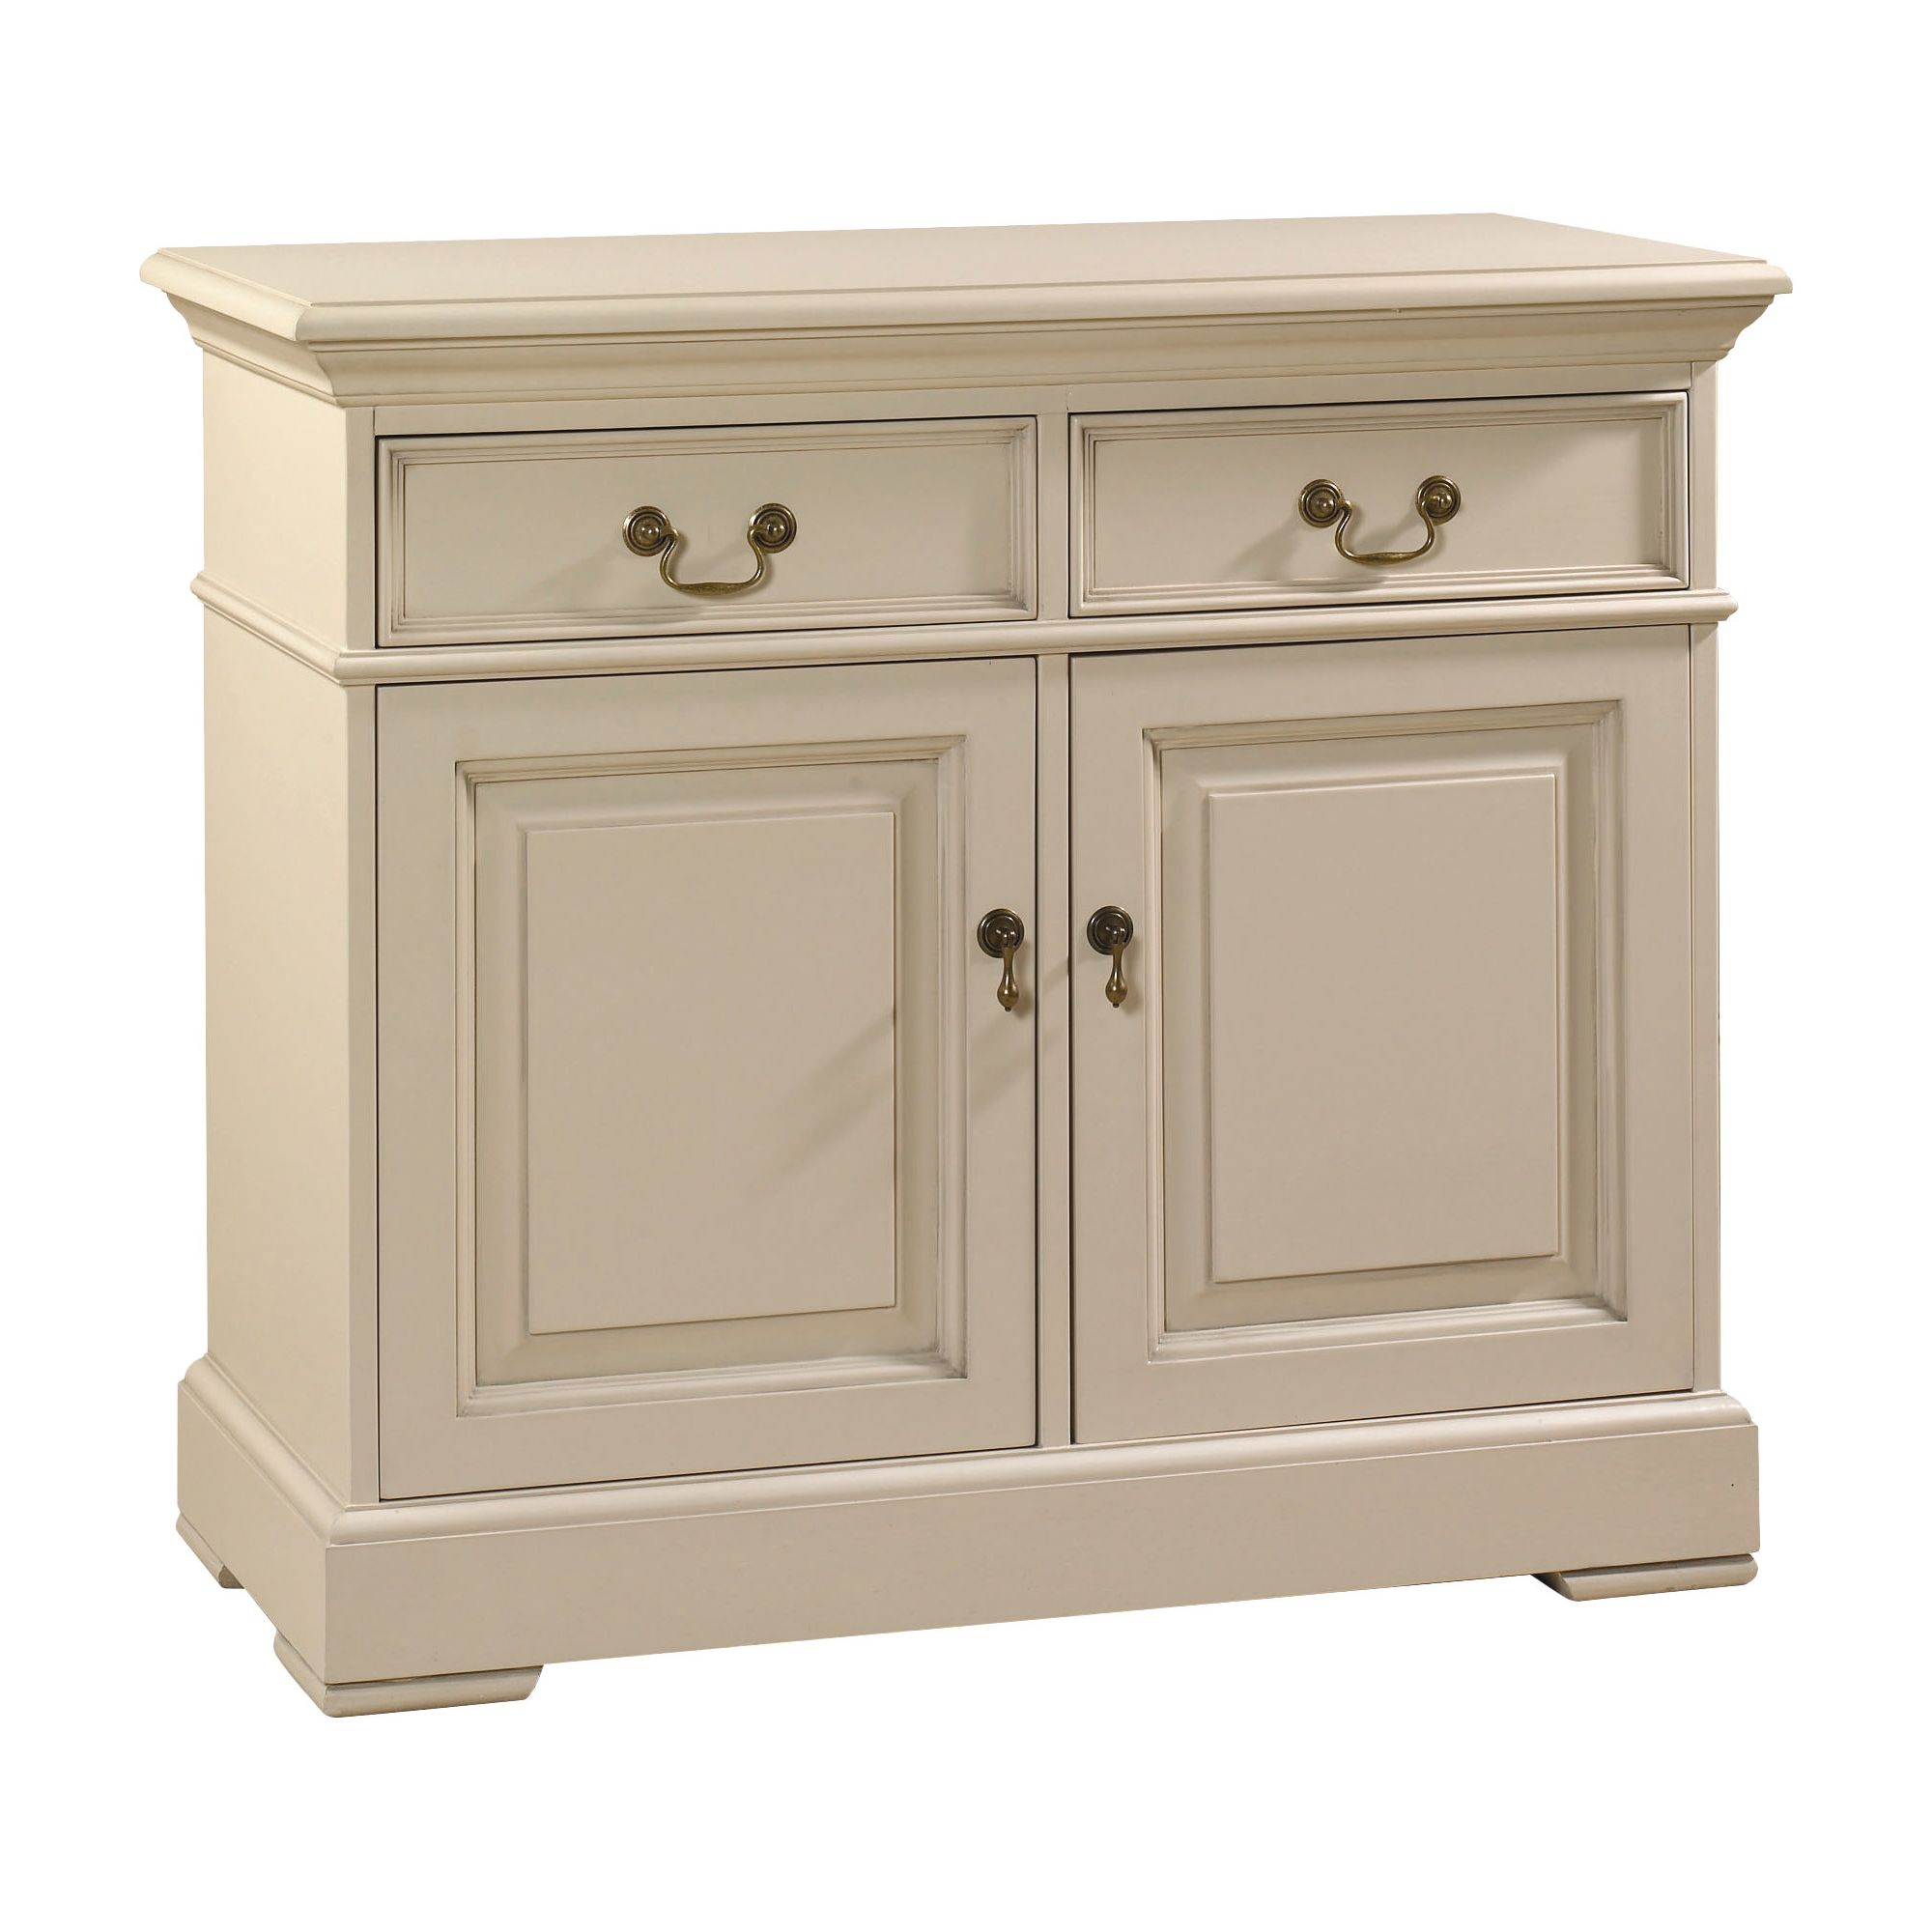 YP Furniture Country House Two Door Sideboard - Oak Top and Ivory at Tescos Direct